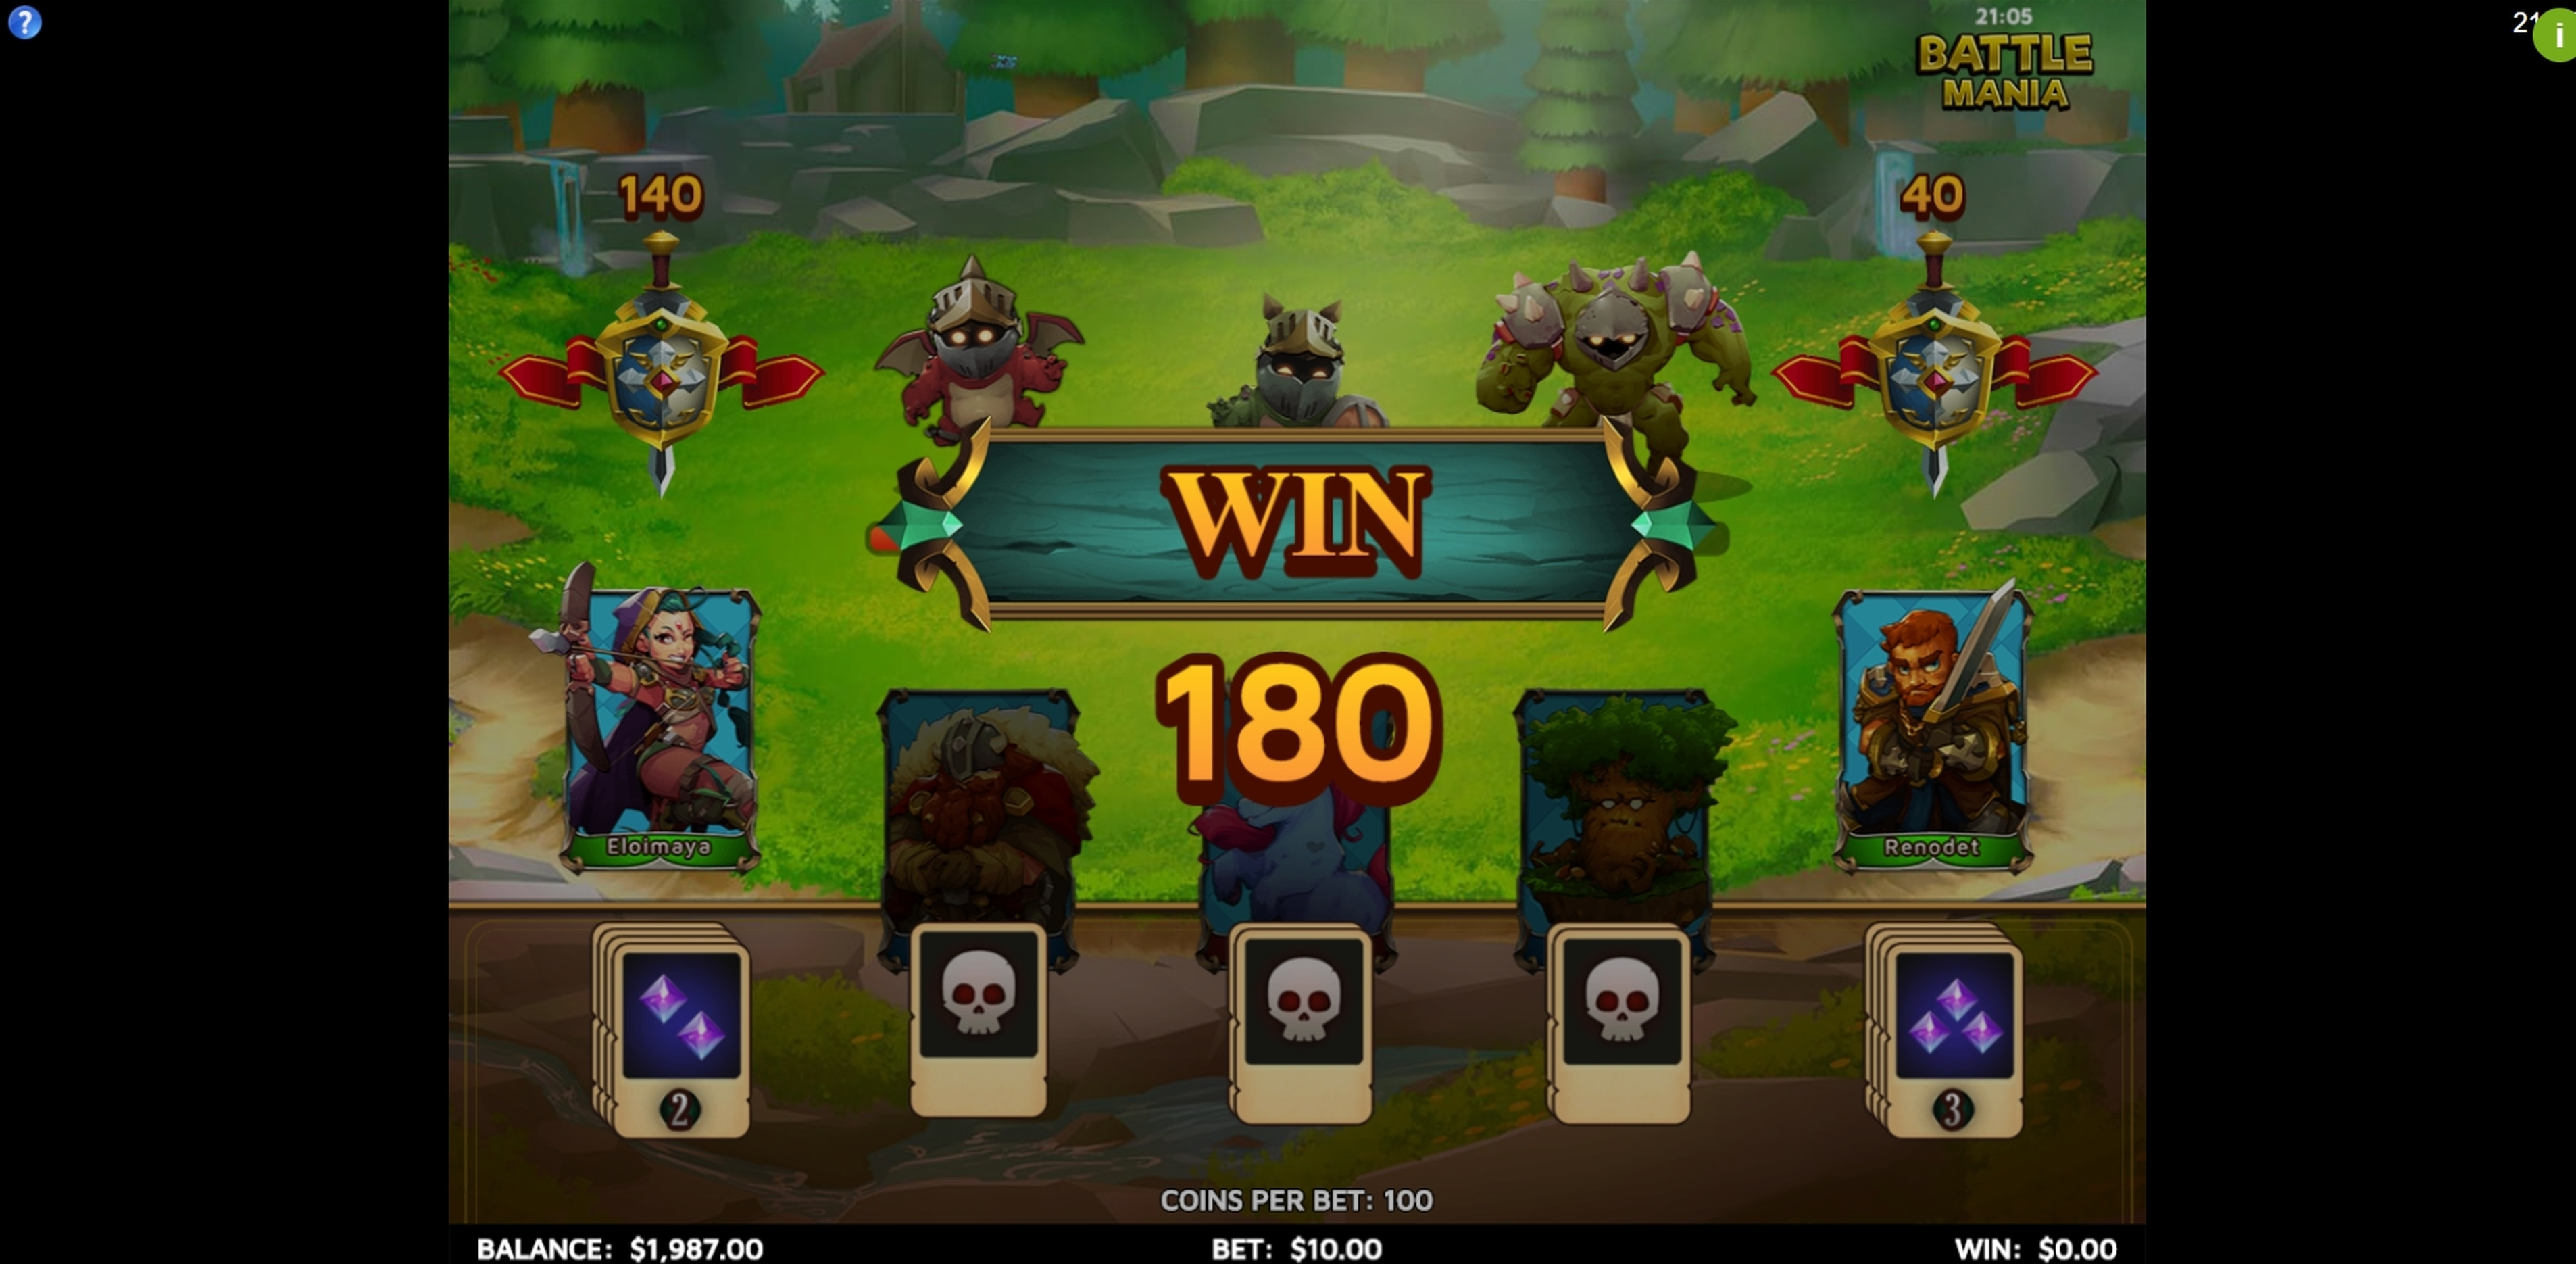 Win Money in Battle Mania Free Slot Game by Skillzzgaming